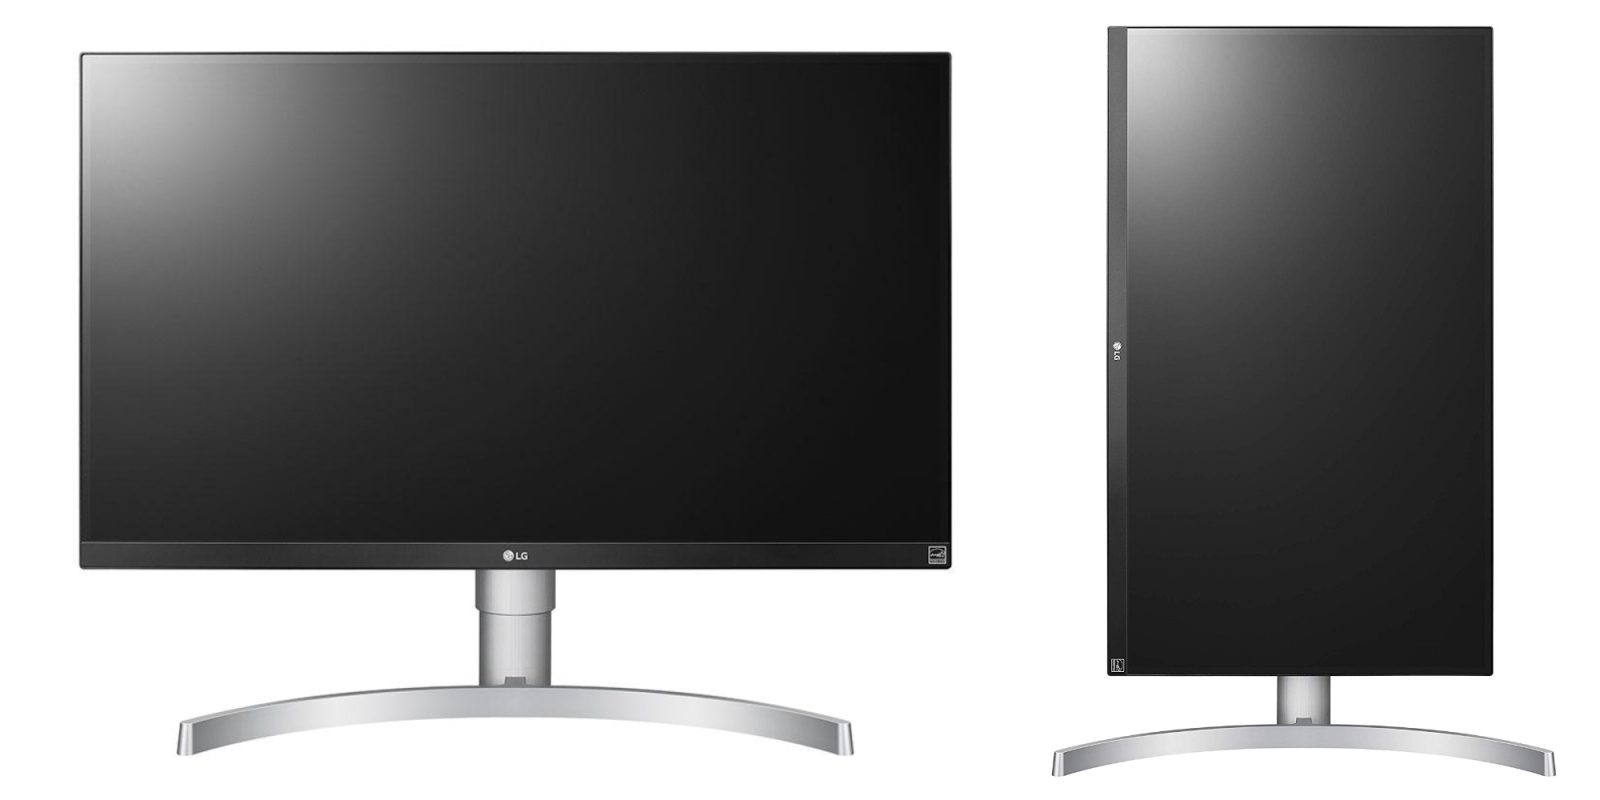 LG 27-inch 4K HDR Monitor upgrades your workstation at $100 off, more from $90